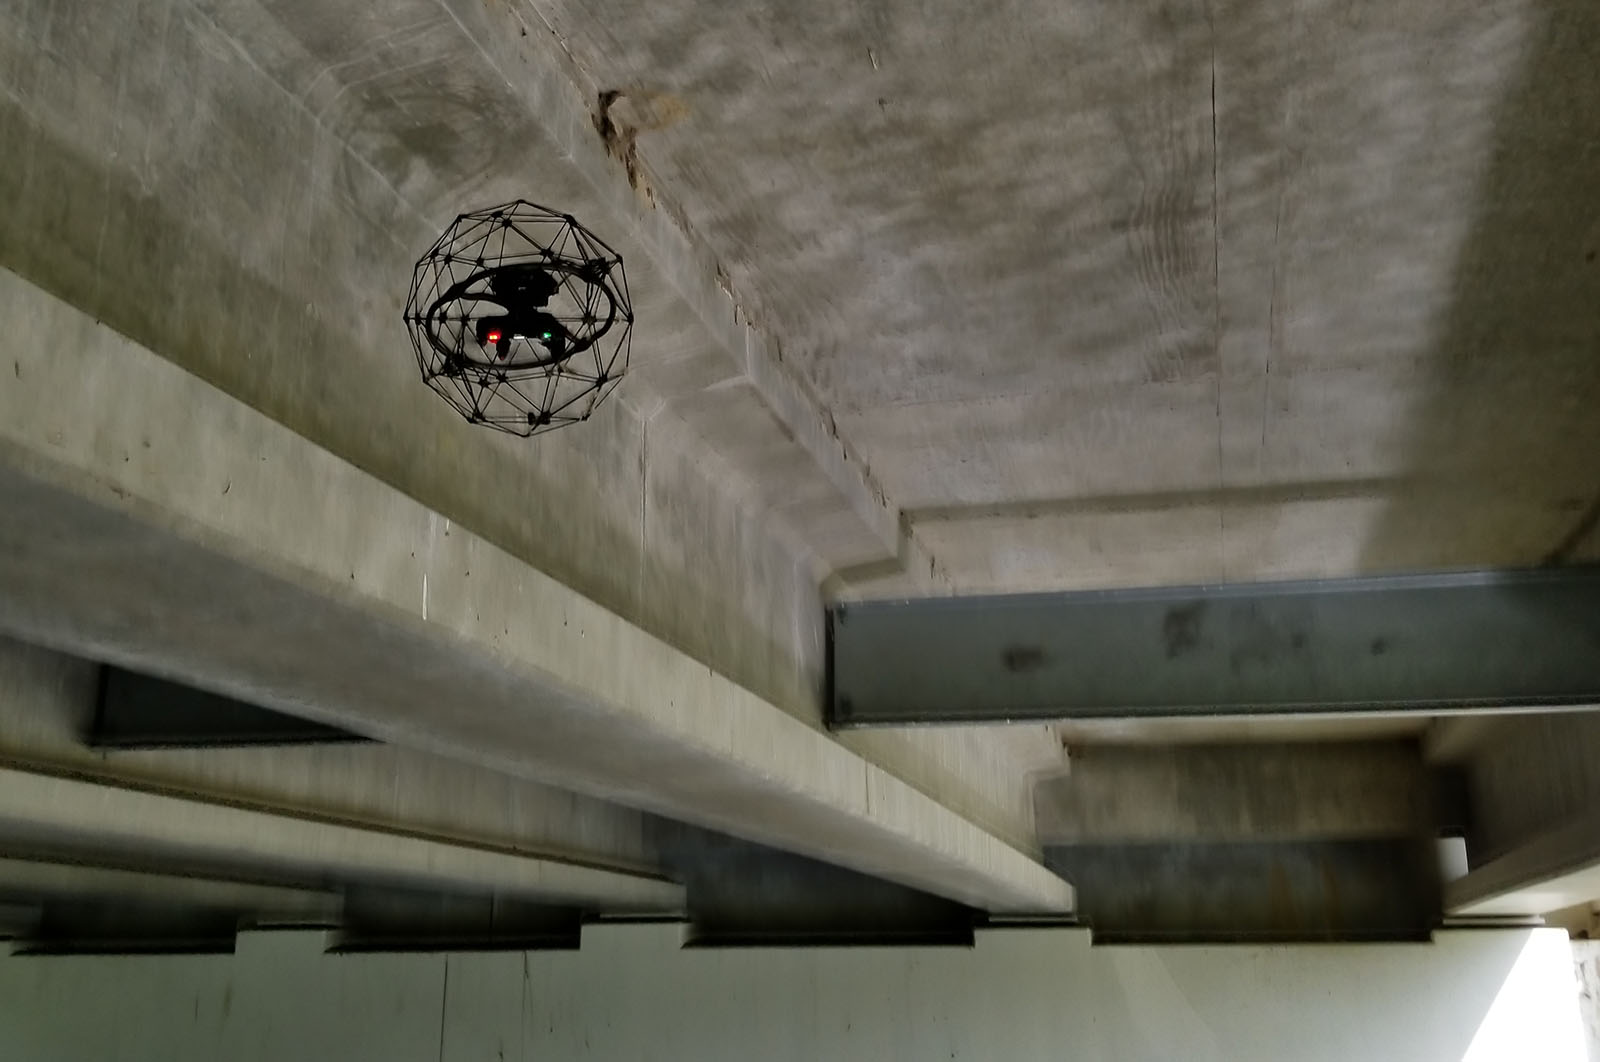 Indoor Drones in Bridge Inspection: Between Beams and inside Box Girder